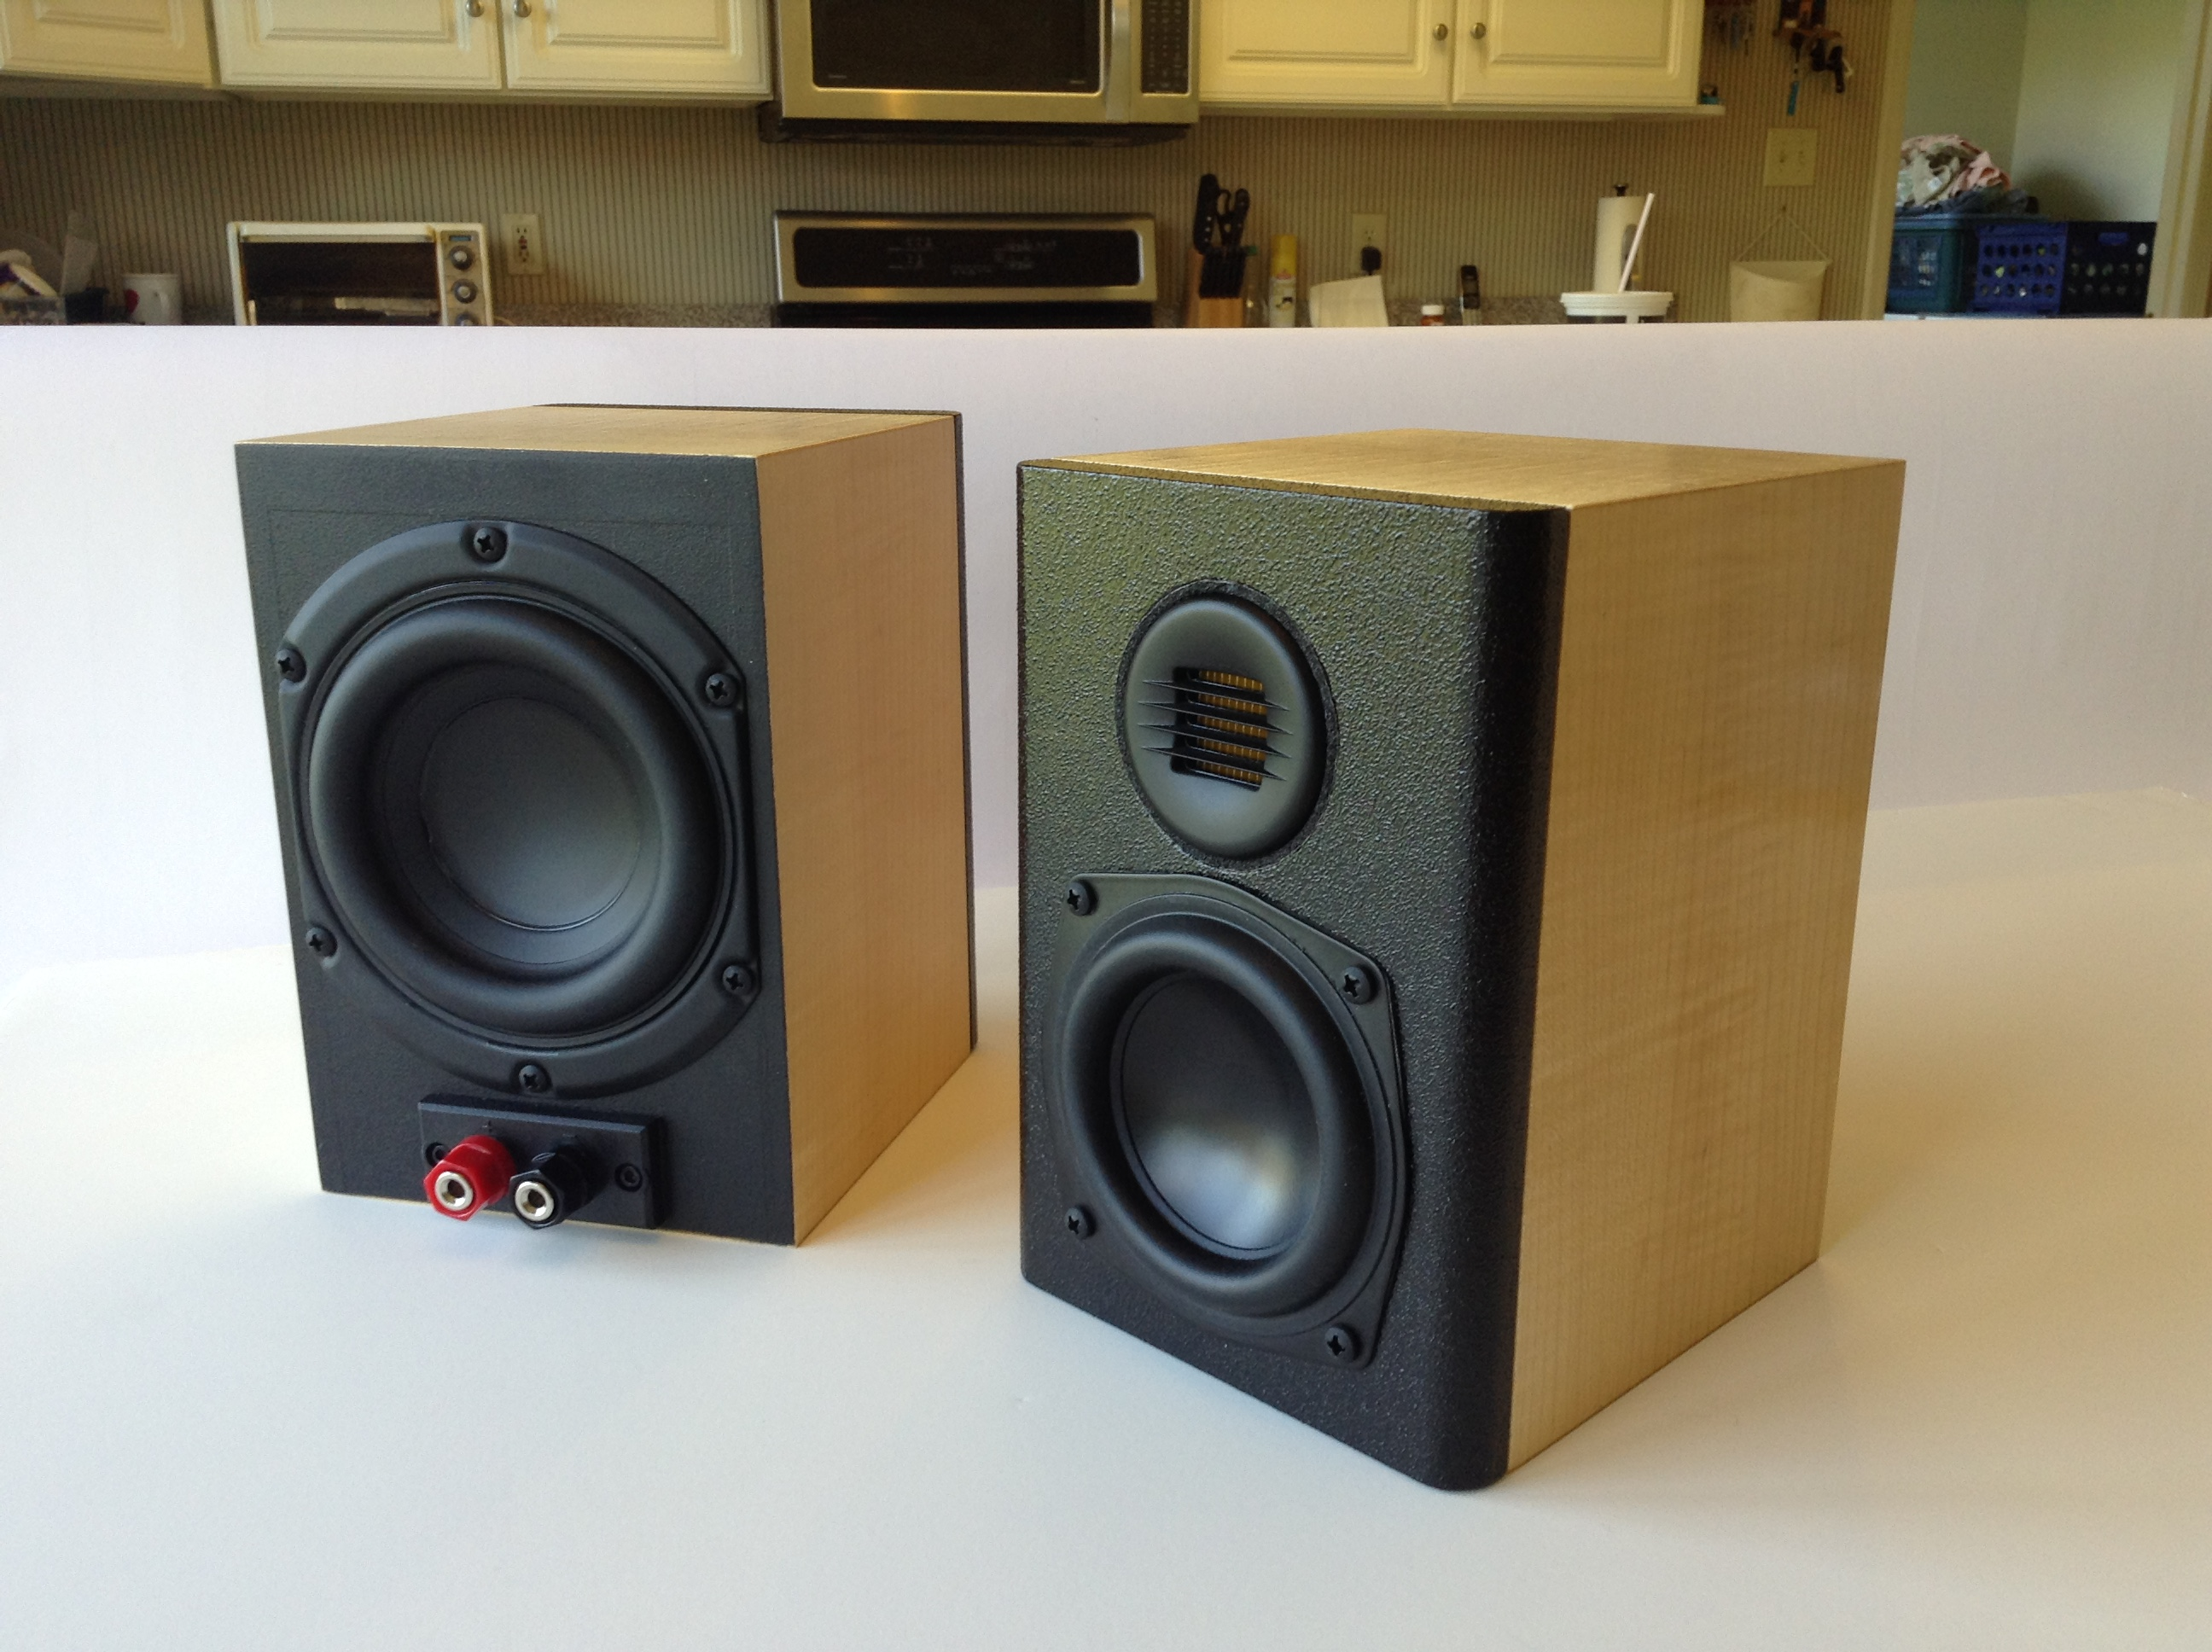 The Bantams As Build Your Own Speaker Kit Image Source Projectgallery Parts Express Com Diy Speakers